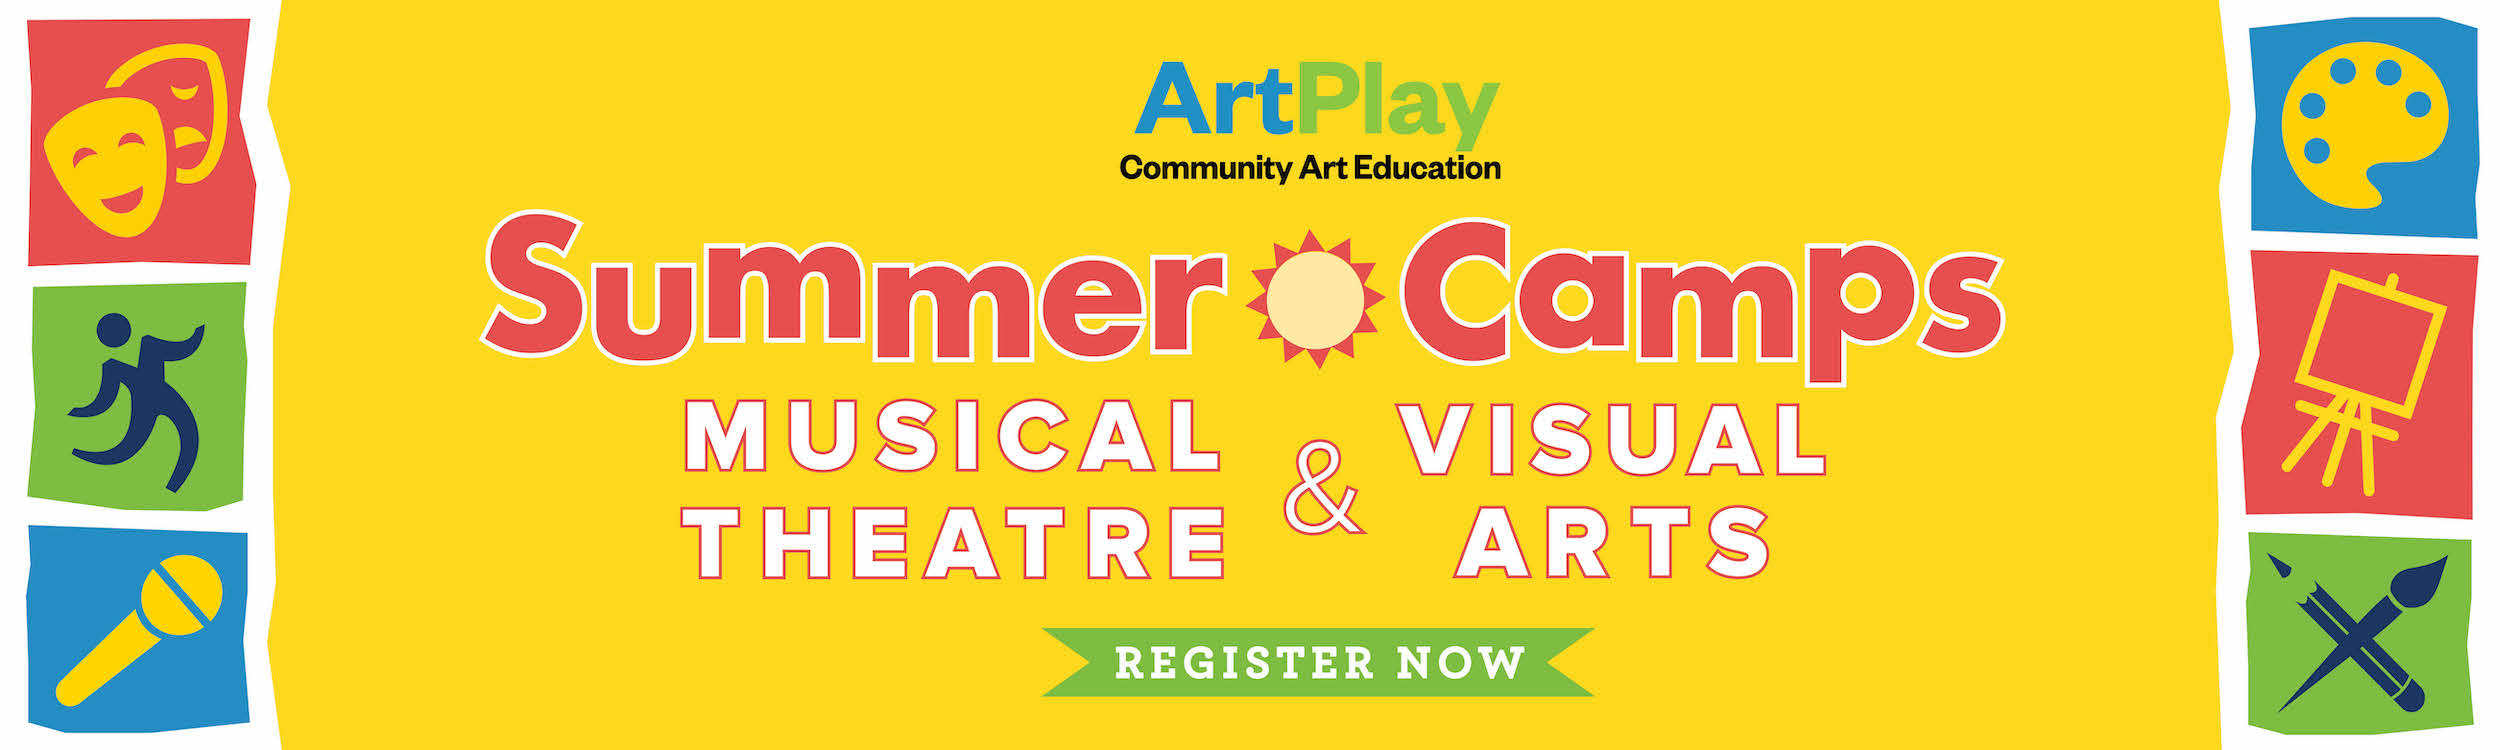 Click HERE to register for ArtPlay Summer Camps!